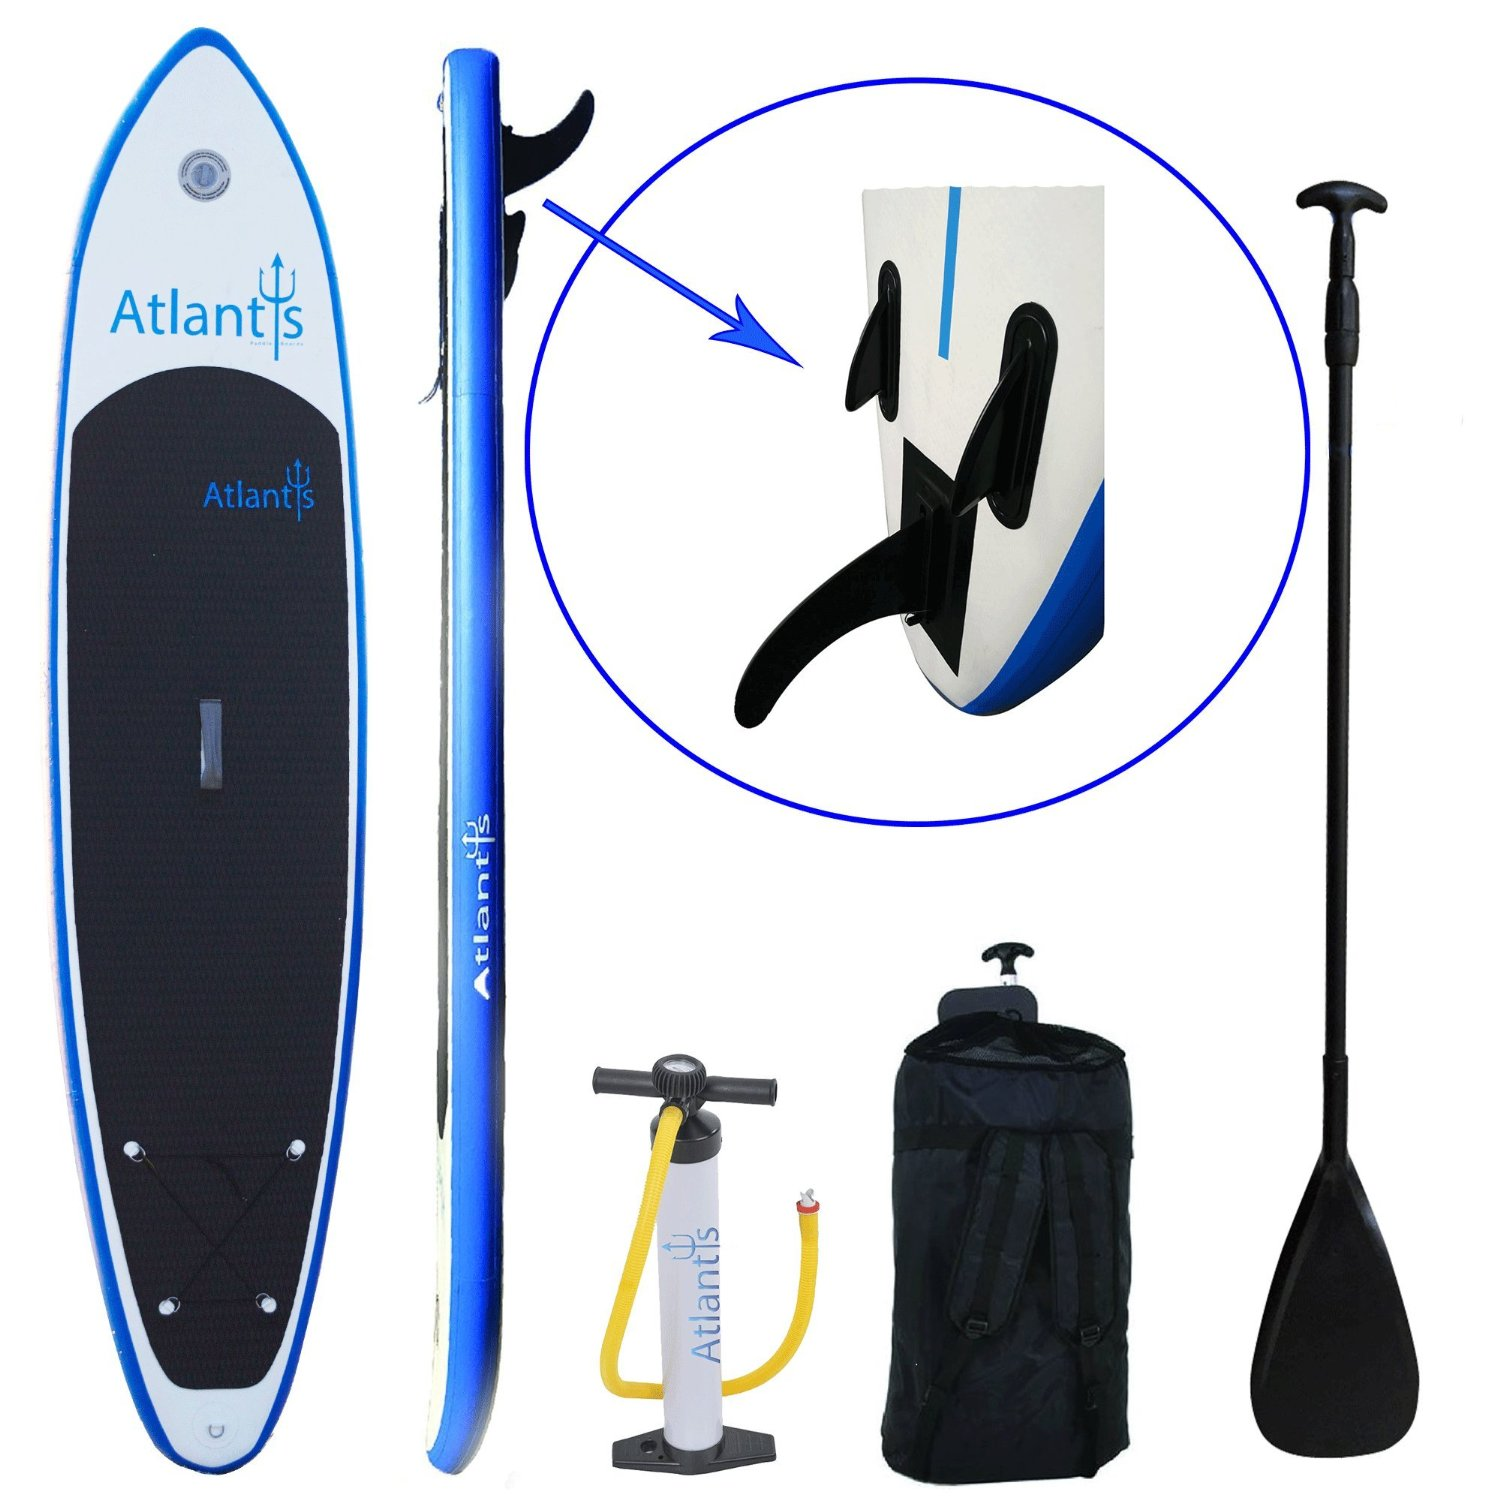 Top 5 Best Paddle Boards in 2020 Reviews